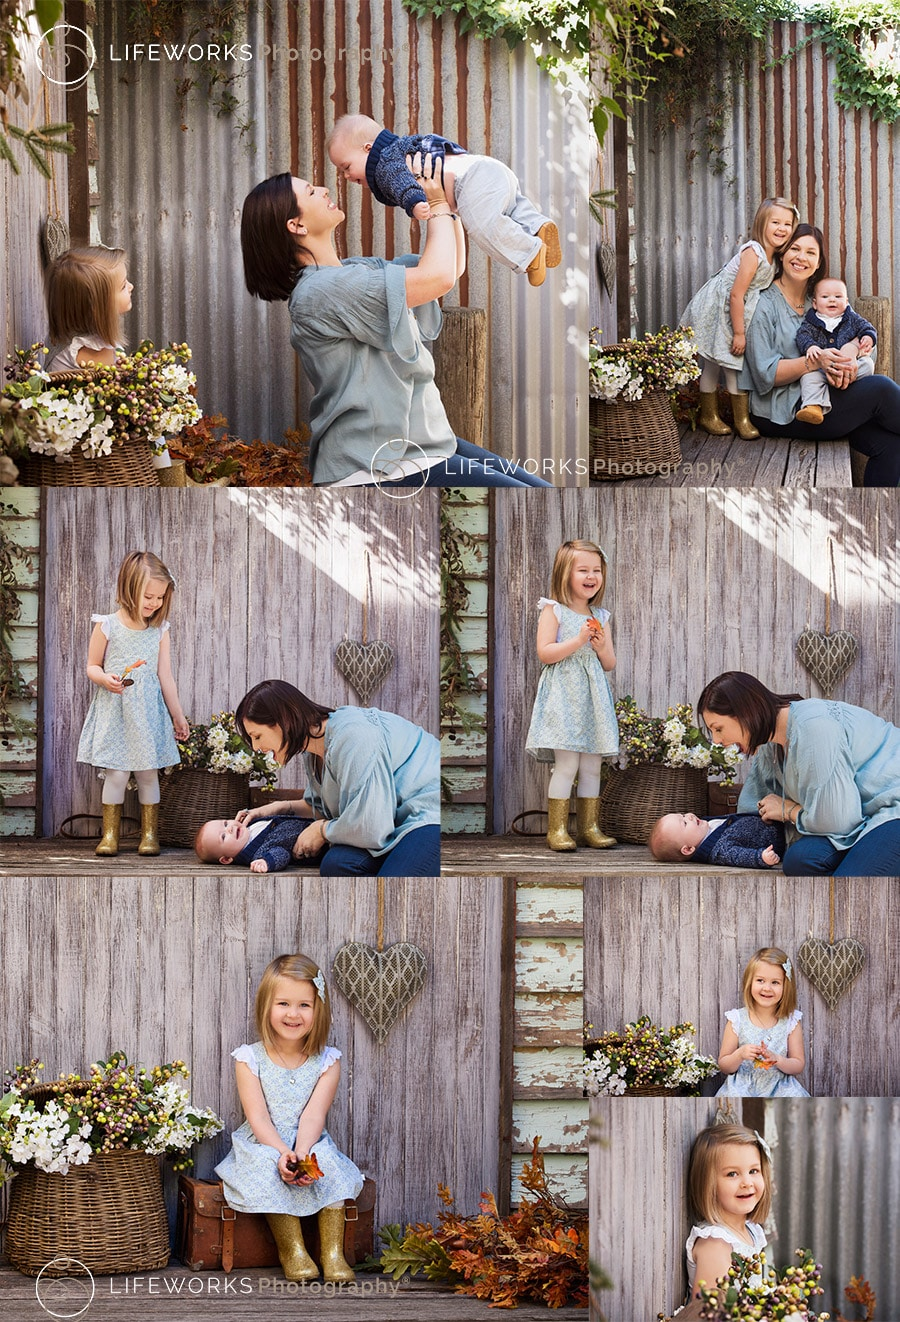 Children's Photography - outdoor photo session